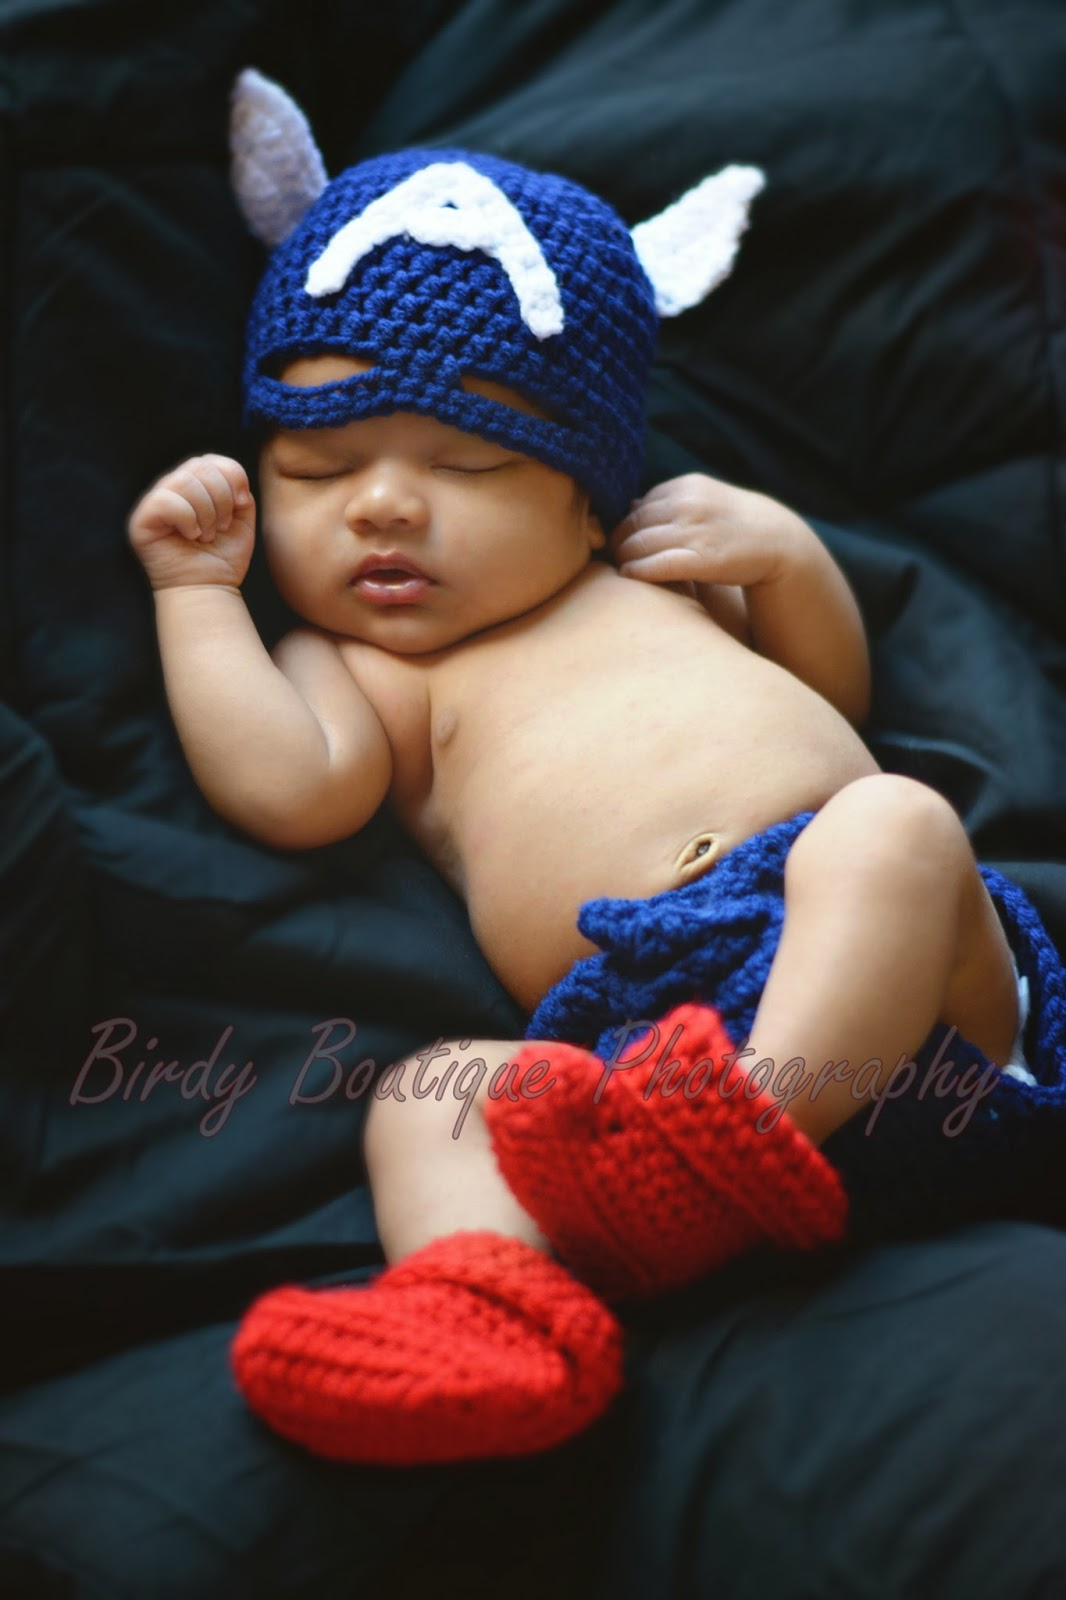 birdy boutique photography  newborn boy shoot with a handmade captain america costume